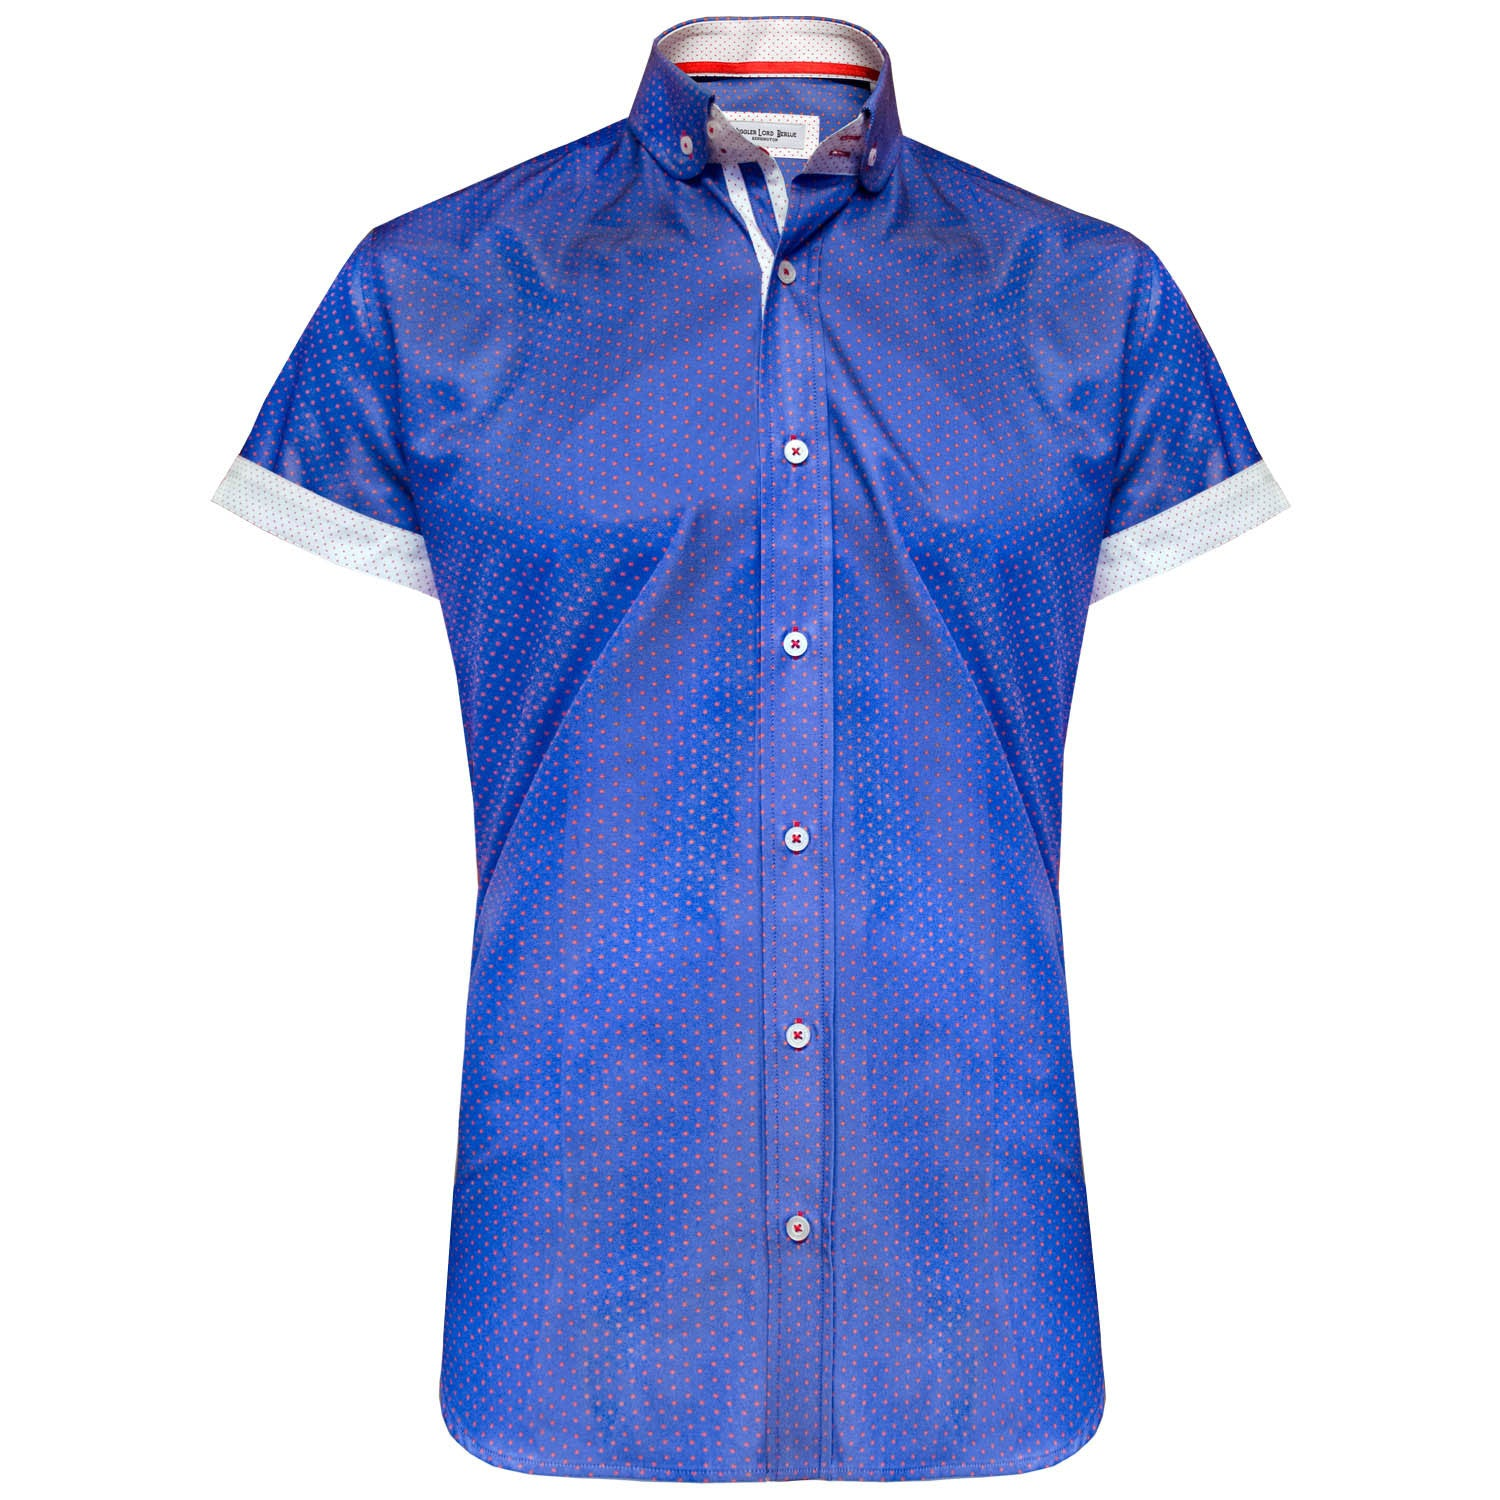 Calix blue short sleeved shirt Jiggler Lord berlue